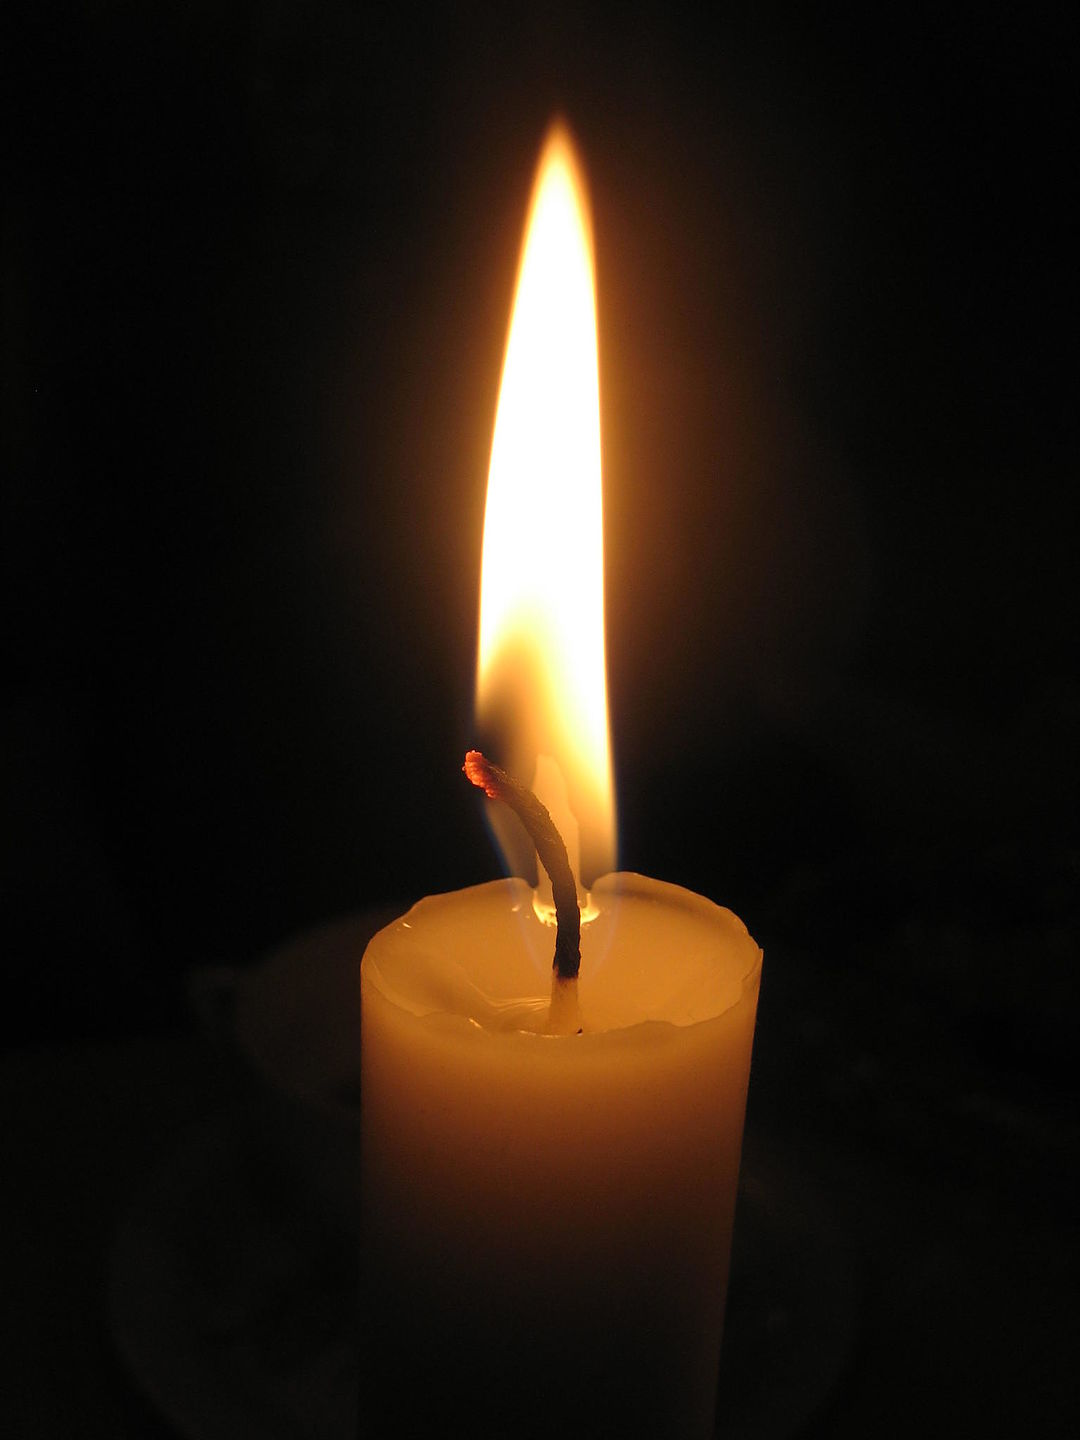 https://dc699.4shared.com/img/7KCzA1-7ei/s24/15f30270b10/Candle_in_the_darkness_by_Luss?async&rand=0.20210579261544148